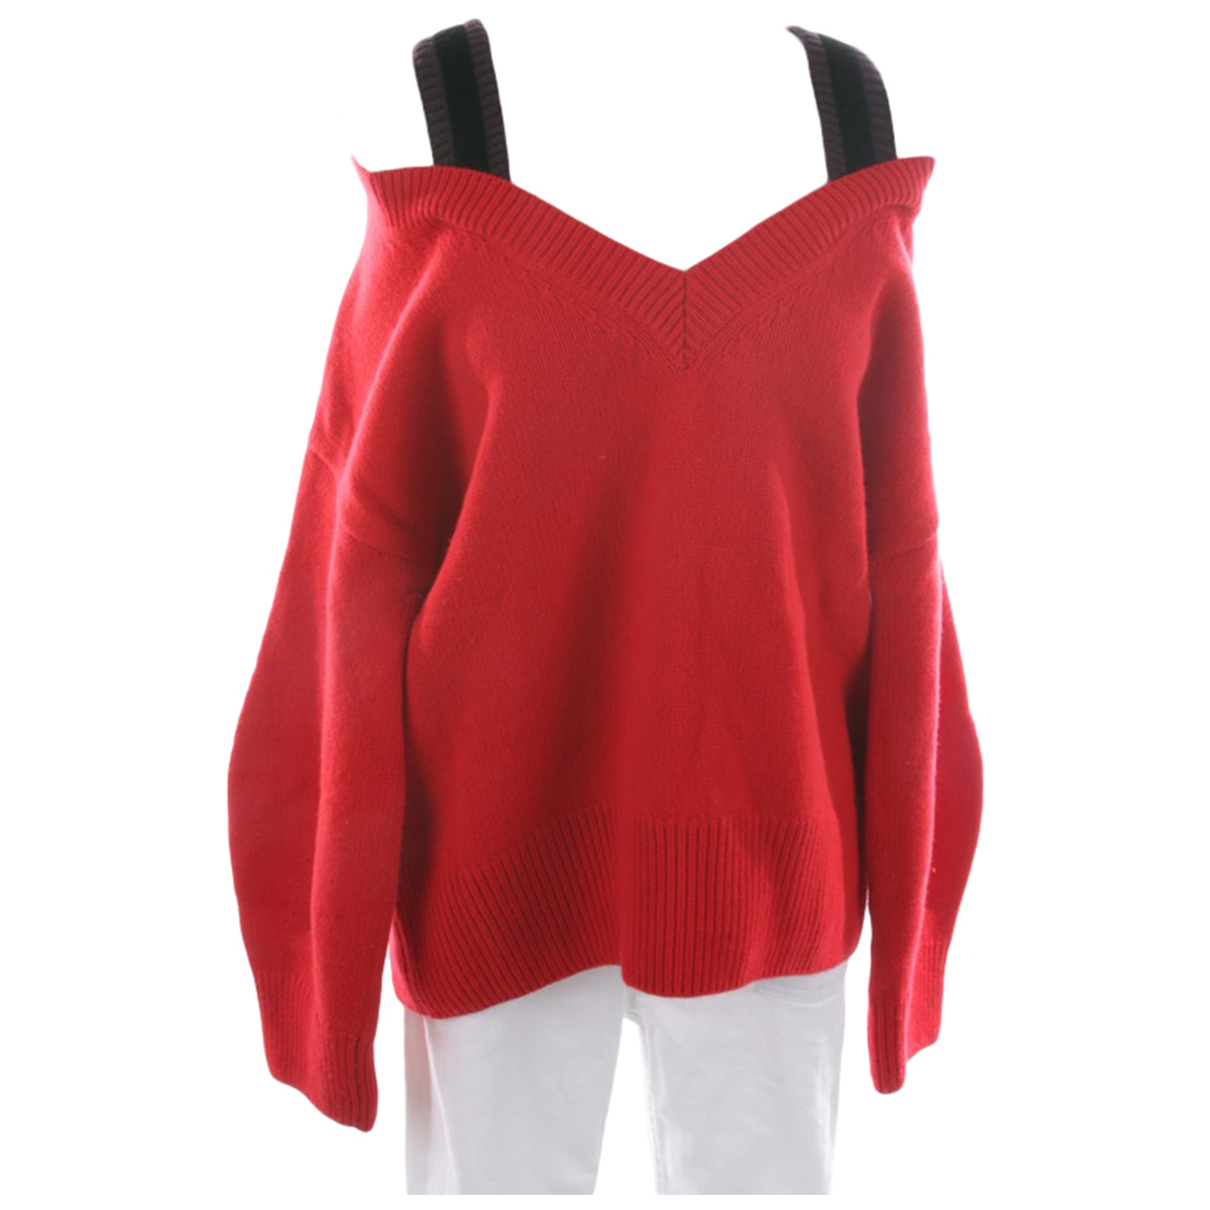 Dorothee Schumacher \N Pullover in  Rot Wolle